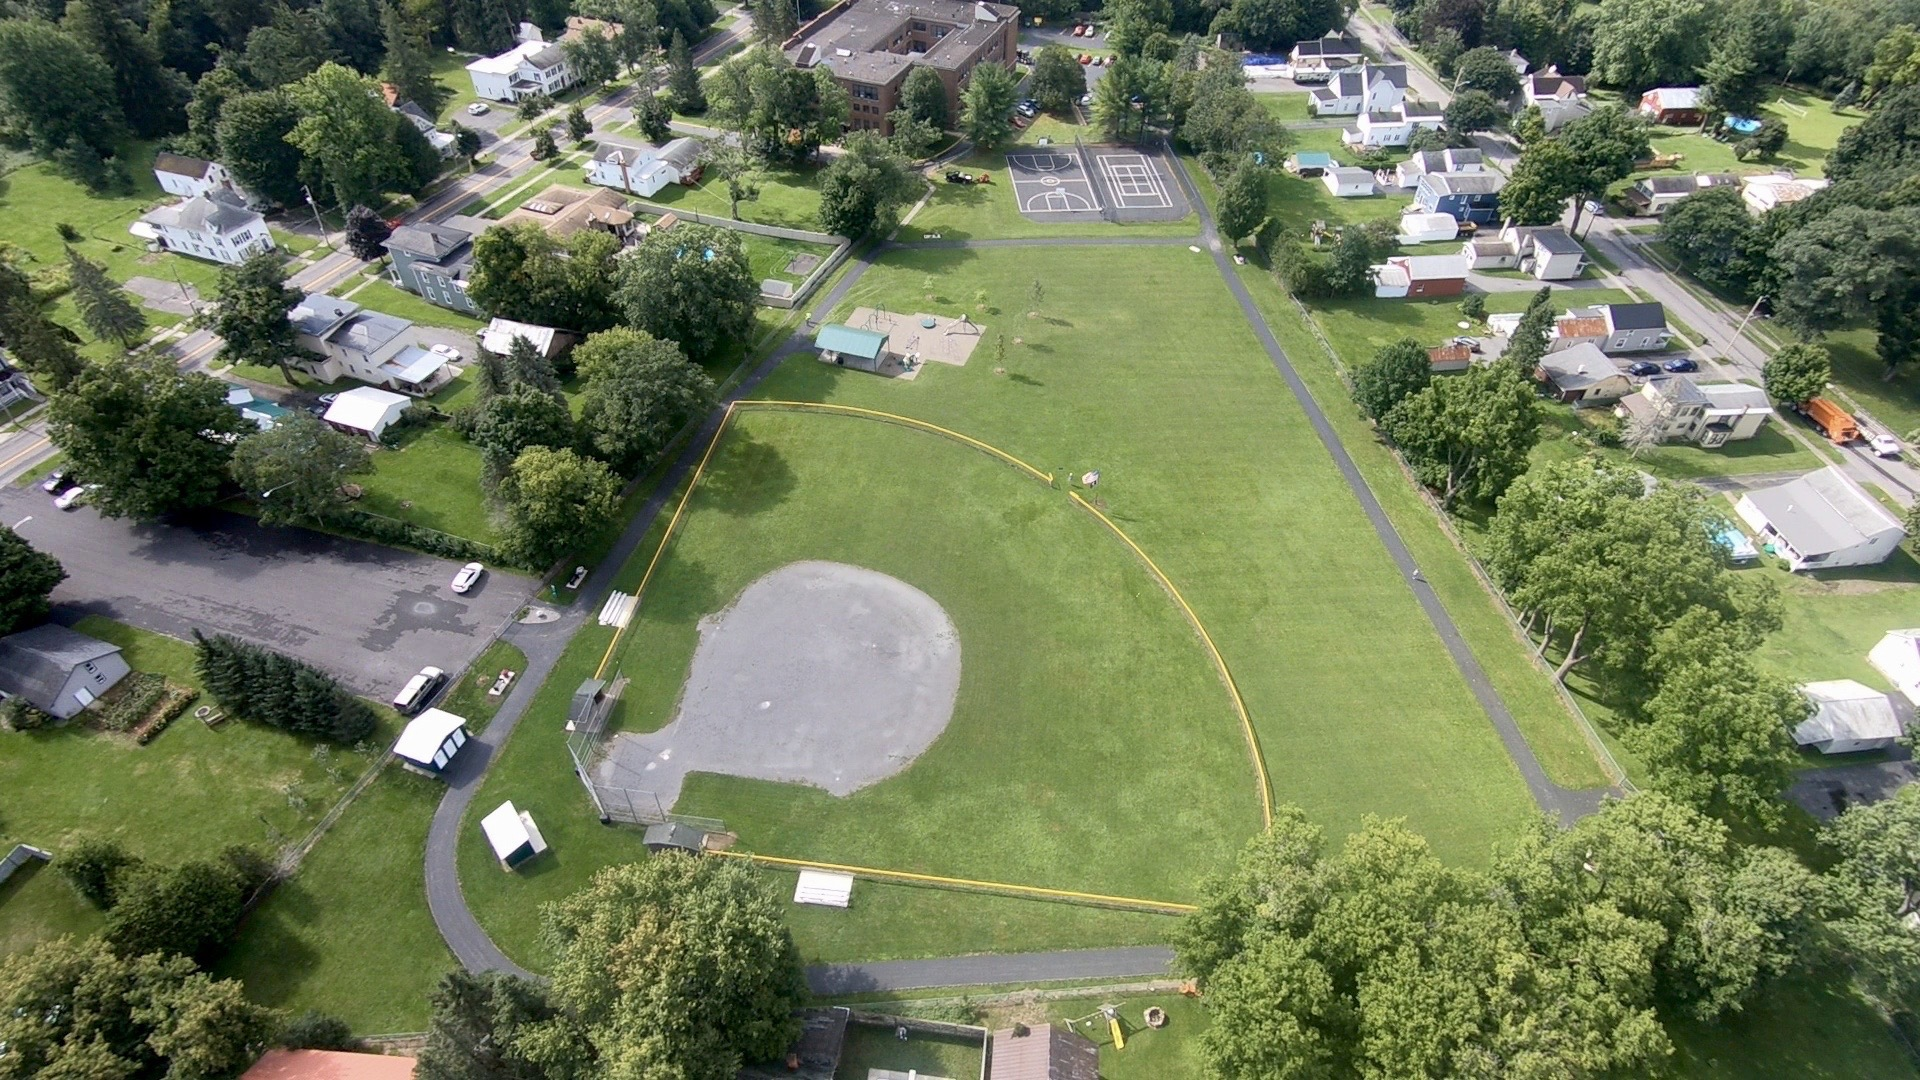 Babbott Park, Waterville - Located in the Center of Waterville, easily accessible from the St. Bernard's Church parking lot on Stafford Ave. The newly renovated park is complete with baseball field, play ground, 1/4 mile paved walking path, bathrooms, and more.